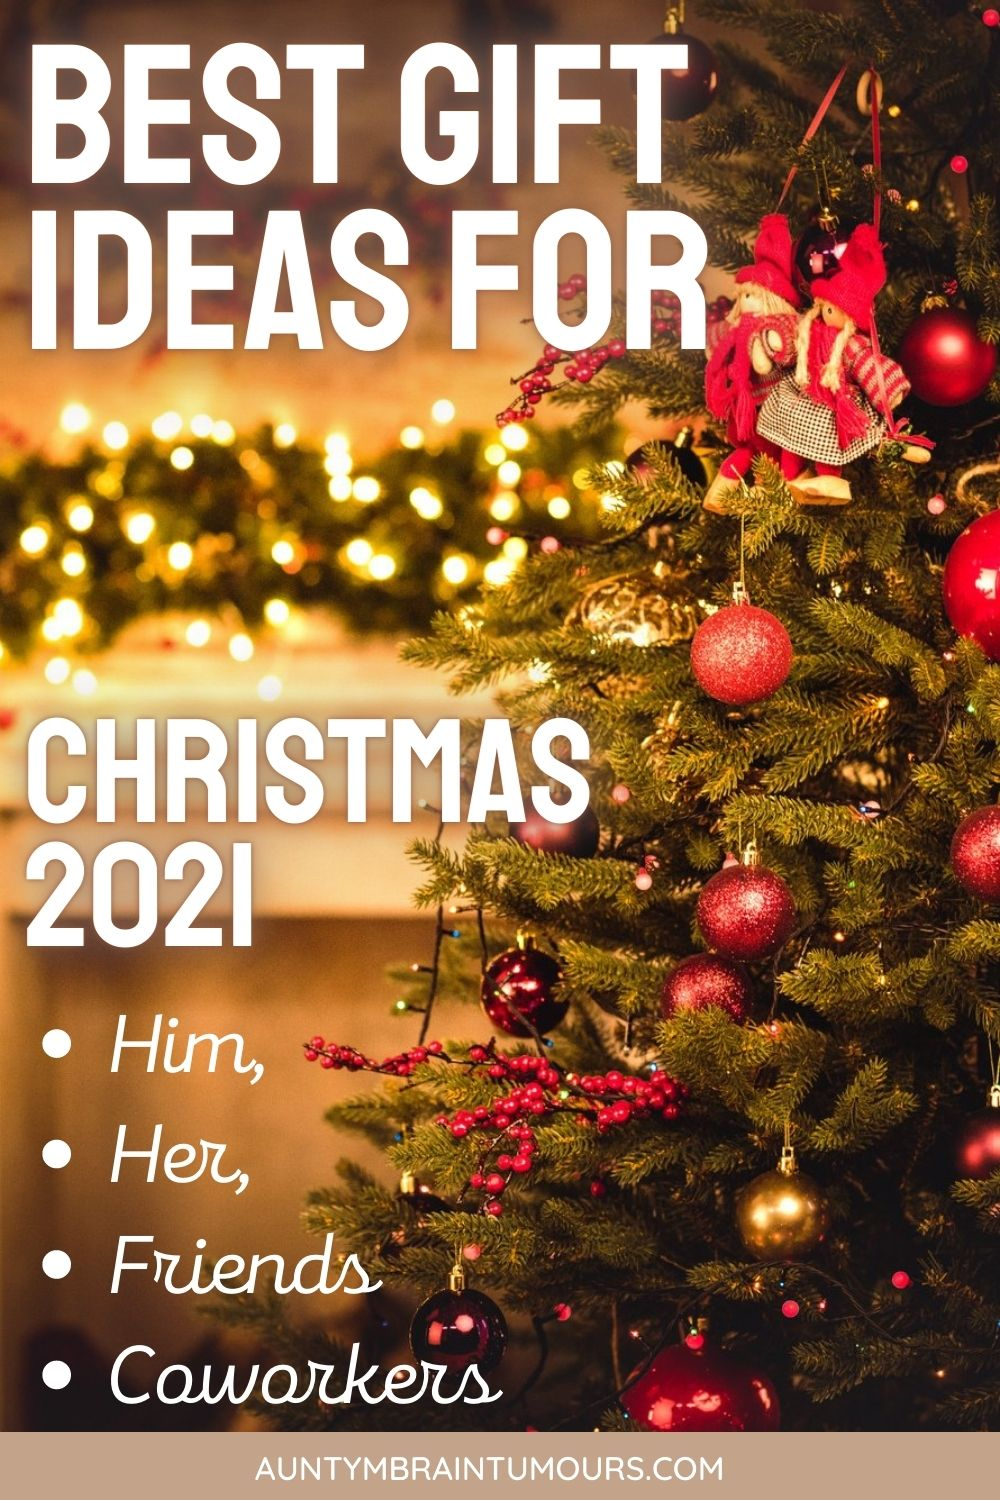 BEST CHRISTMAS 2021 HIM, HER, FRIENDS AND COWORKERS GIFT GUIDE